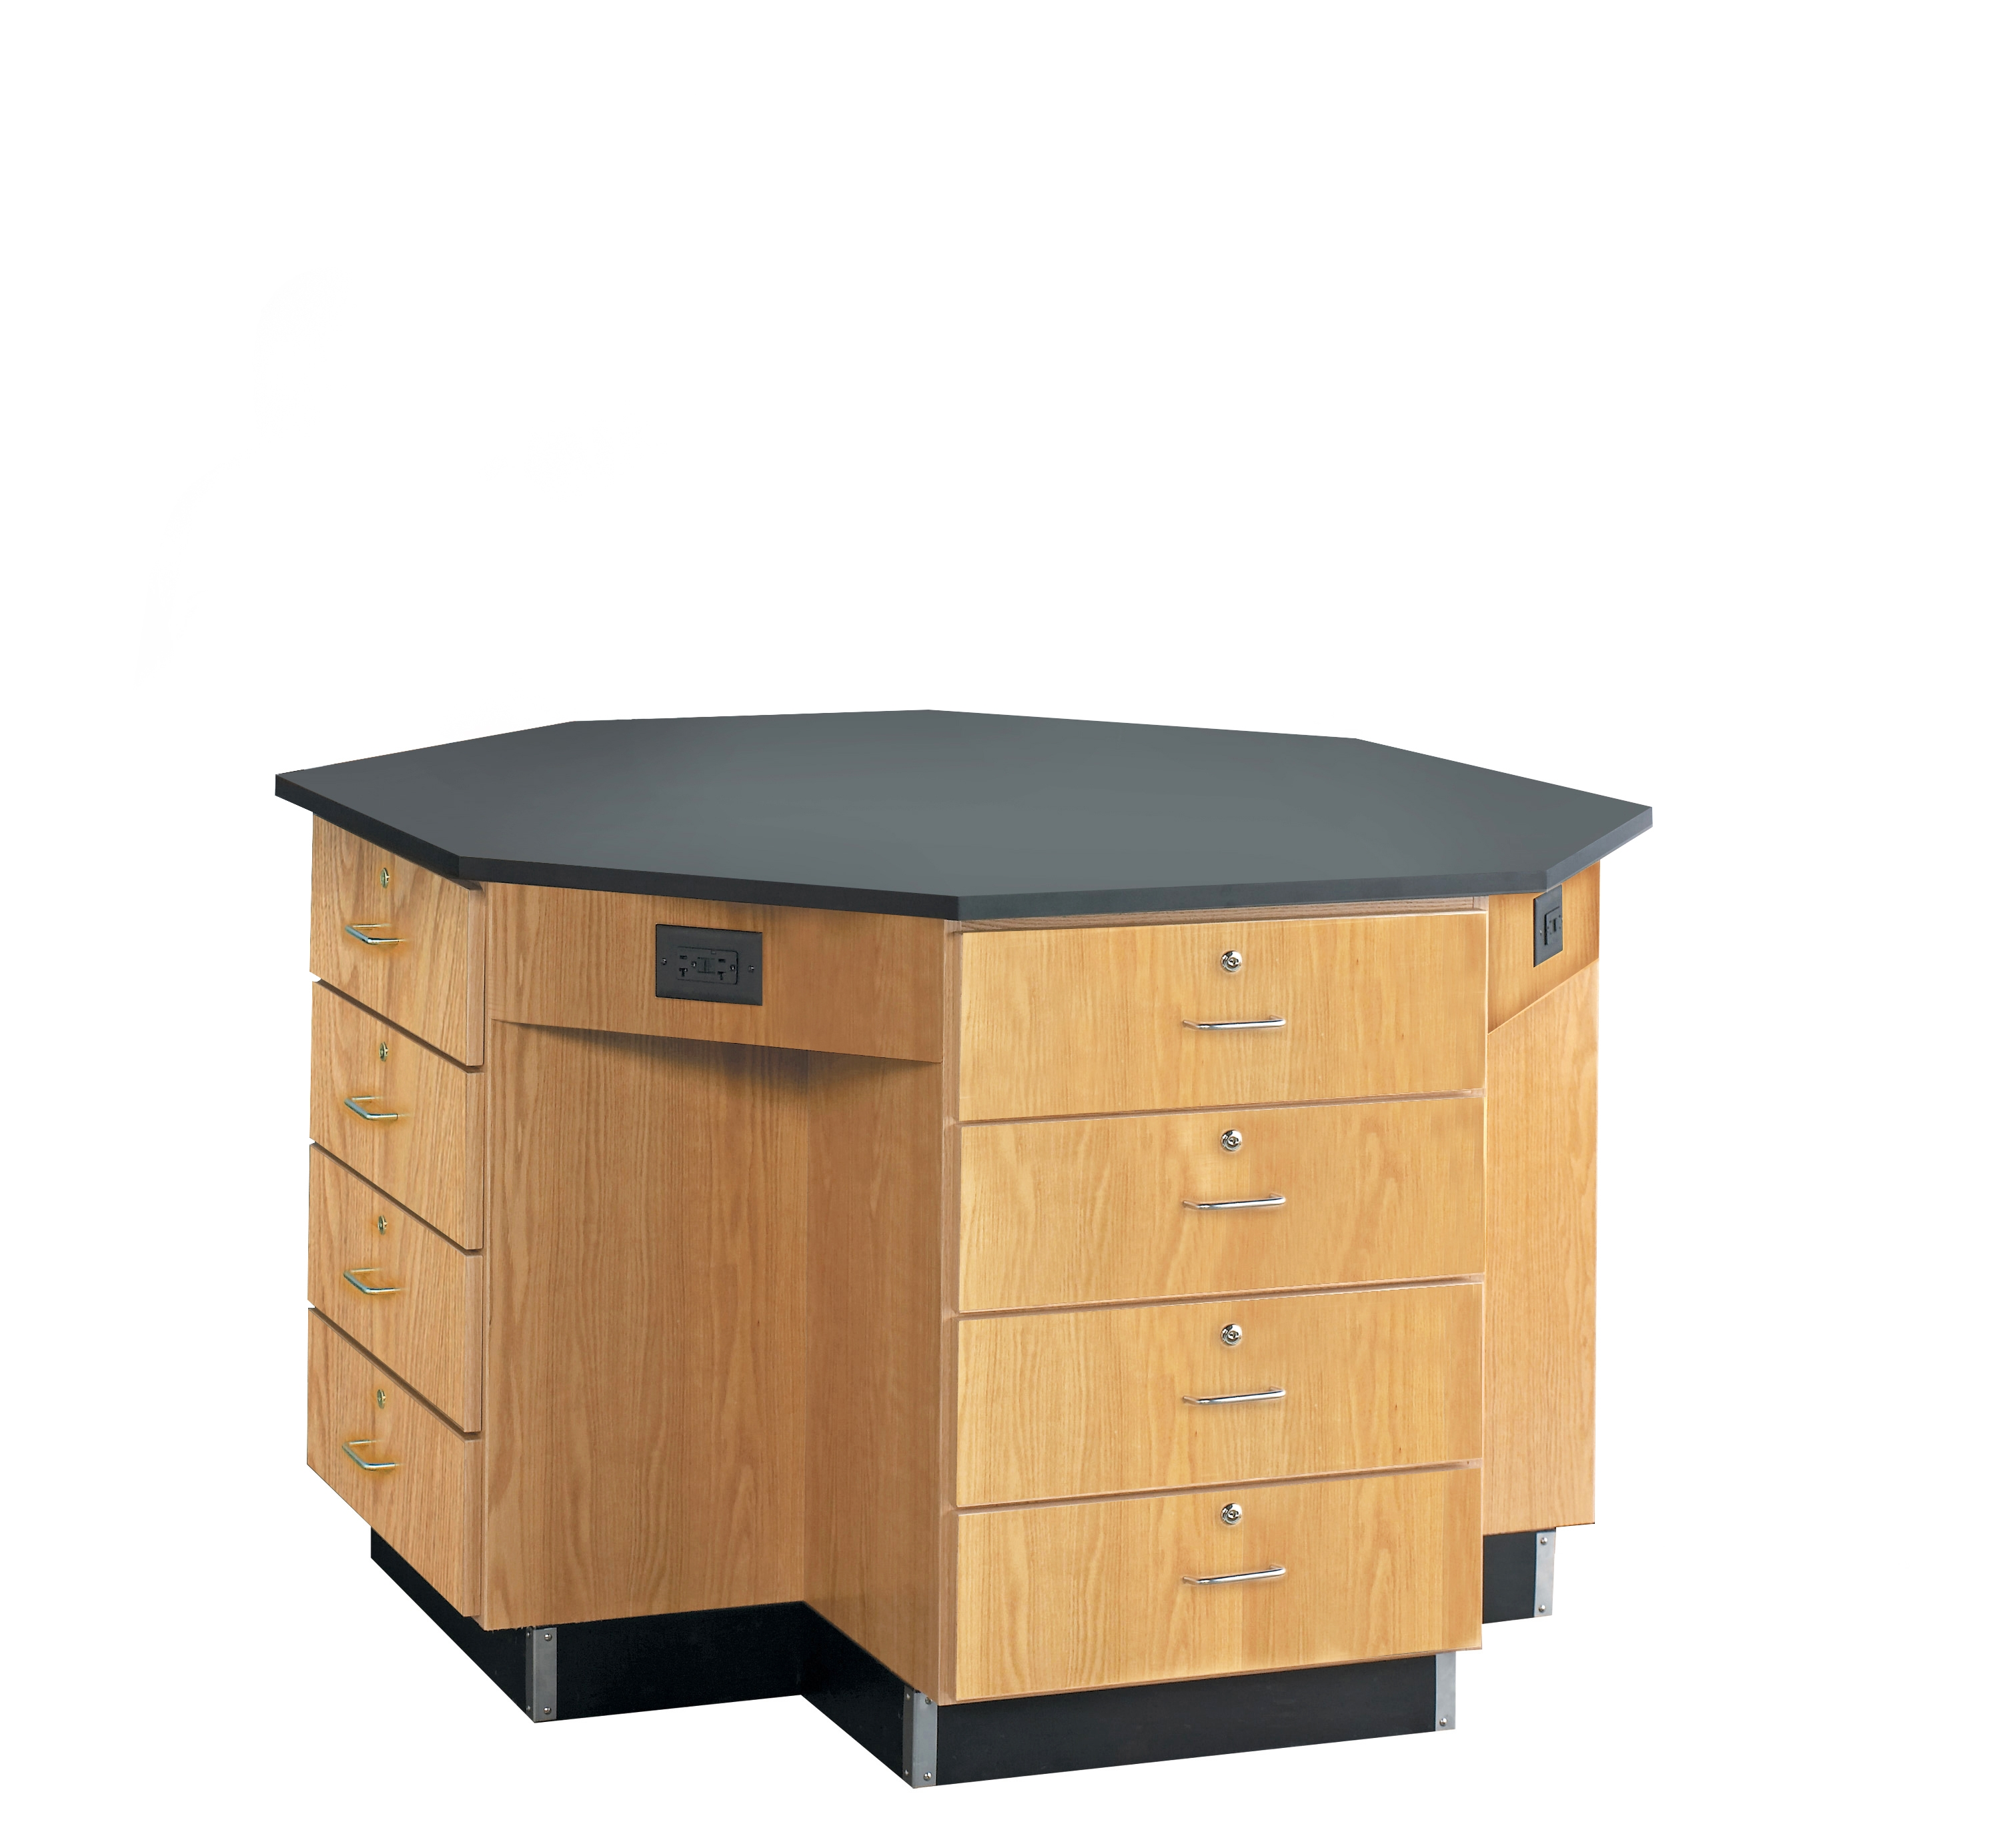 Diversified Woodcrafts Octagon Workstation with Drawer Base - Phenolic Top